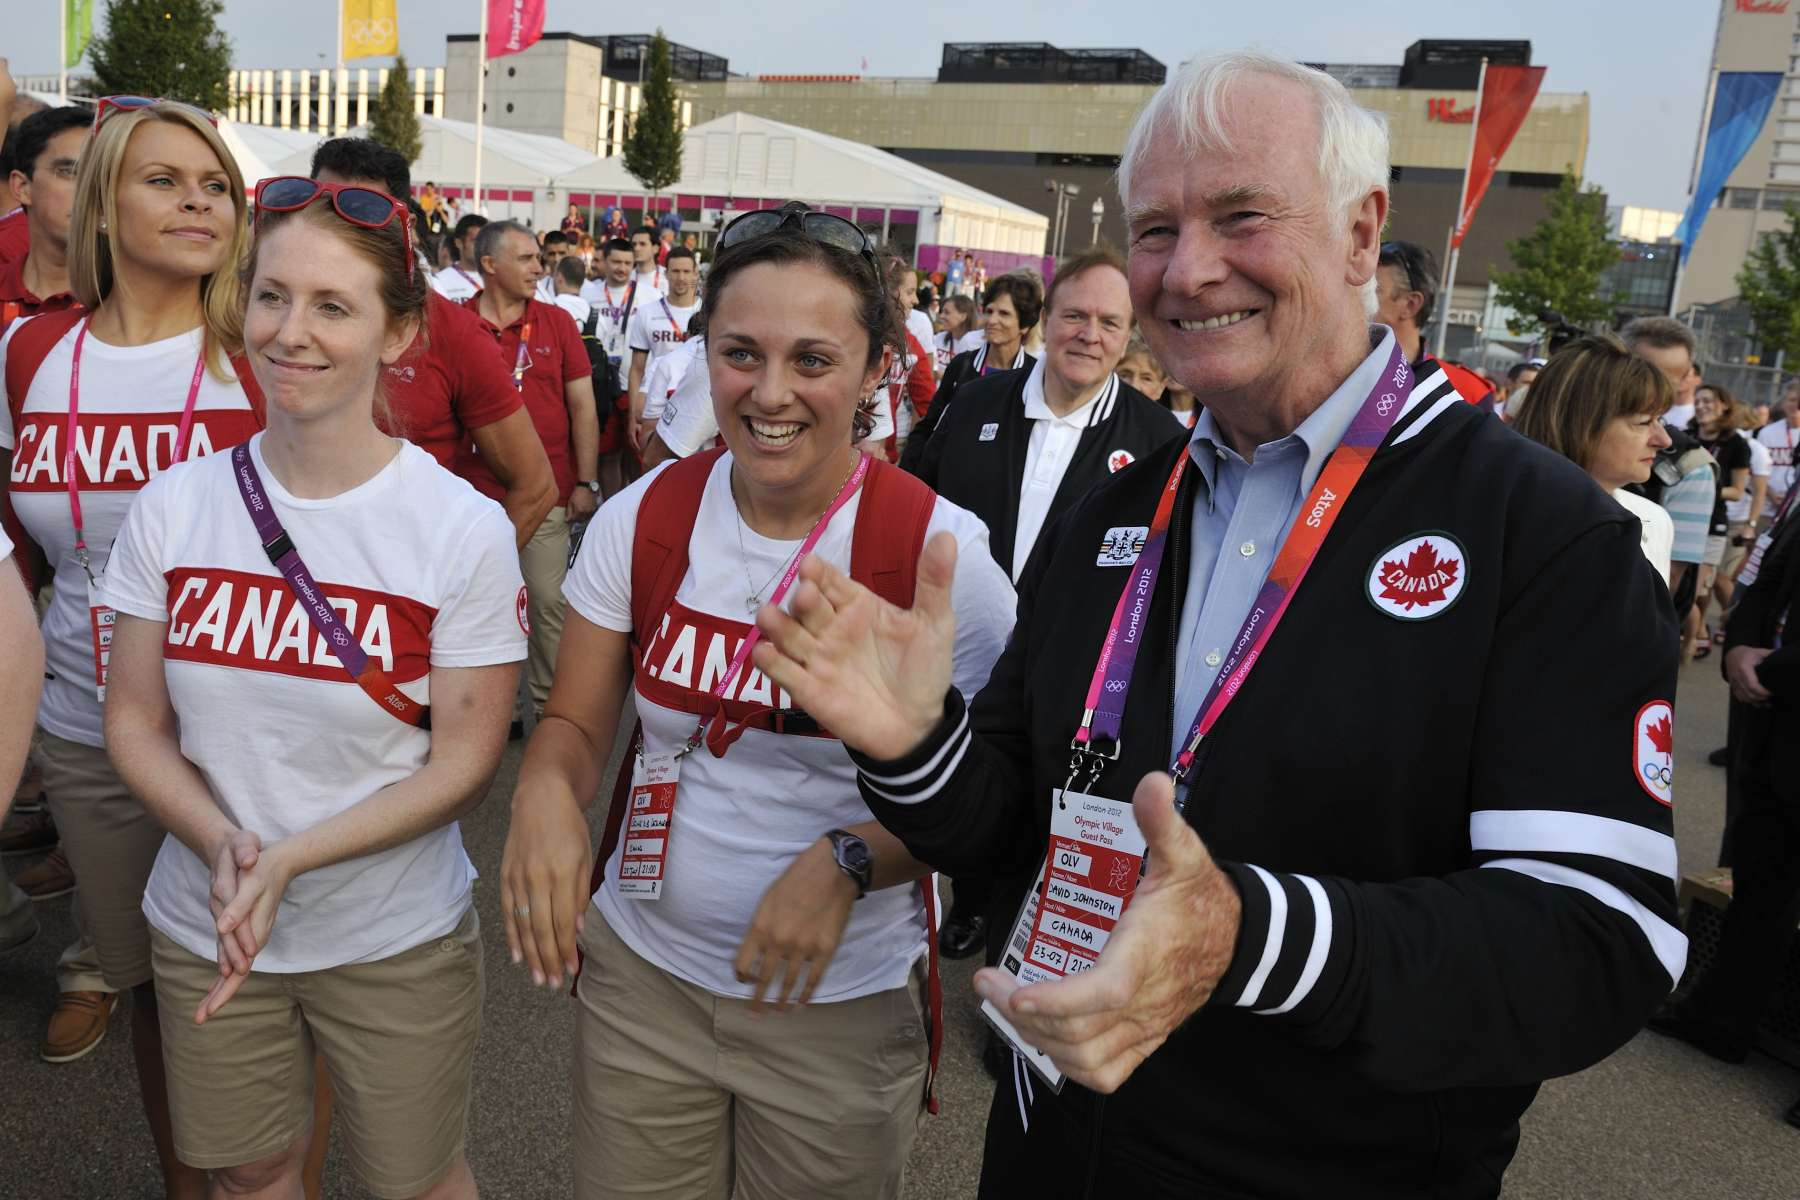 Governor General David Johnston wishes good luck to Canadian athletes, during his visit to the Olympic Village (London, UK). 